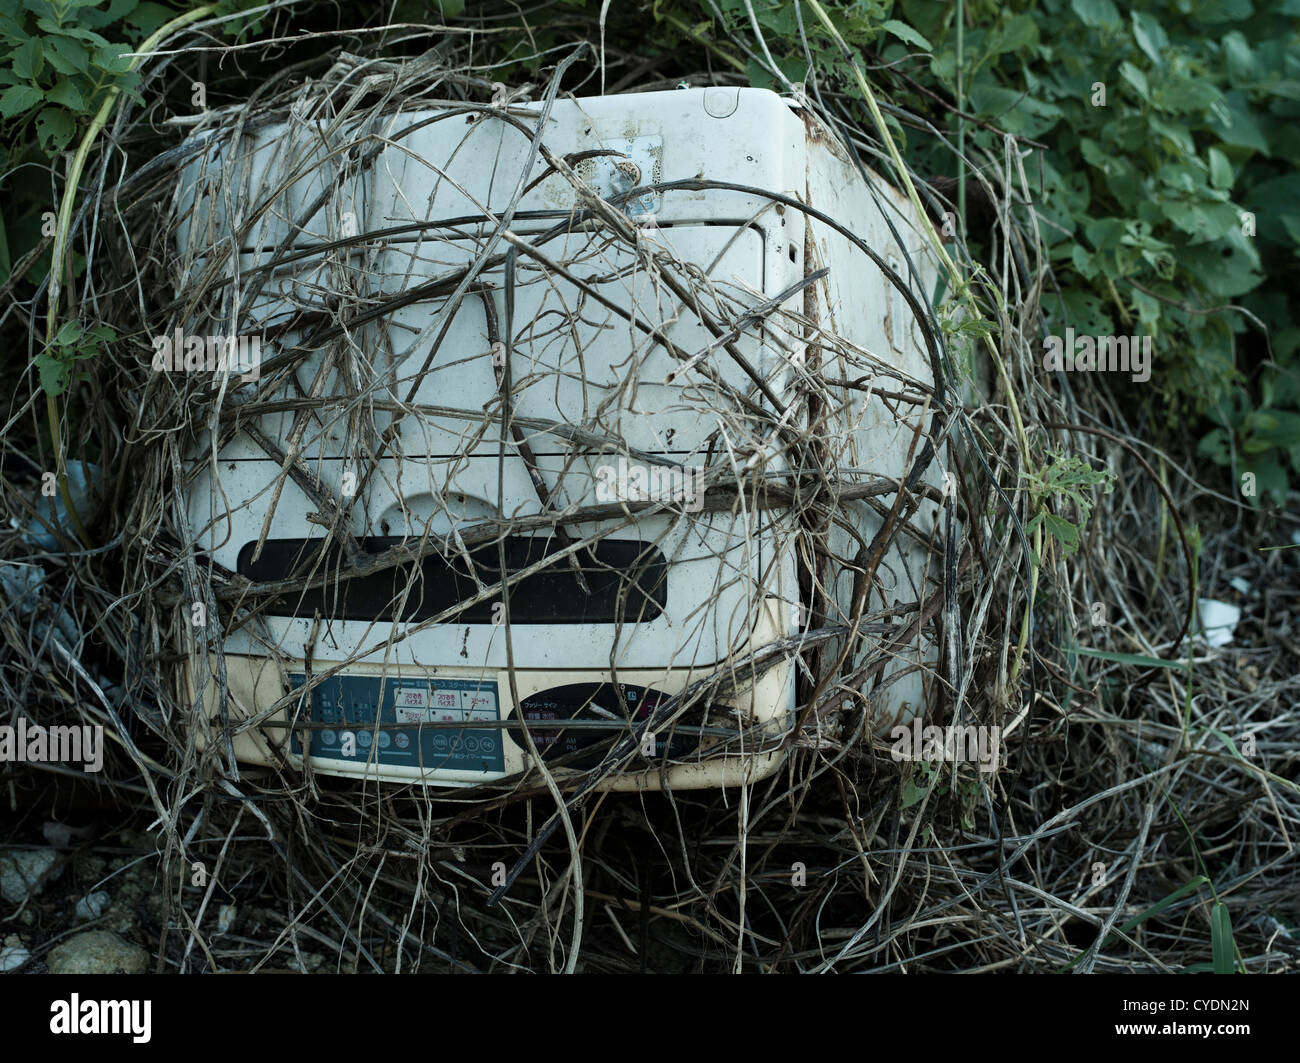 Washing machine dumped in the undergrowth beside a road and slowly enveloped by vegetation. - Stock Image